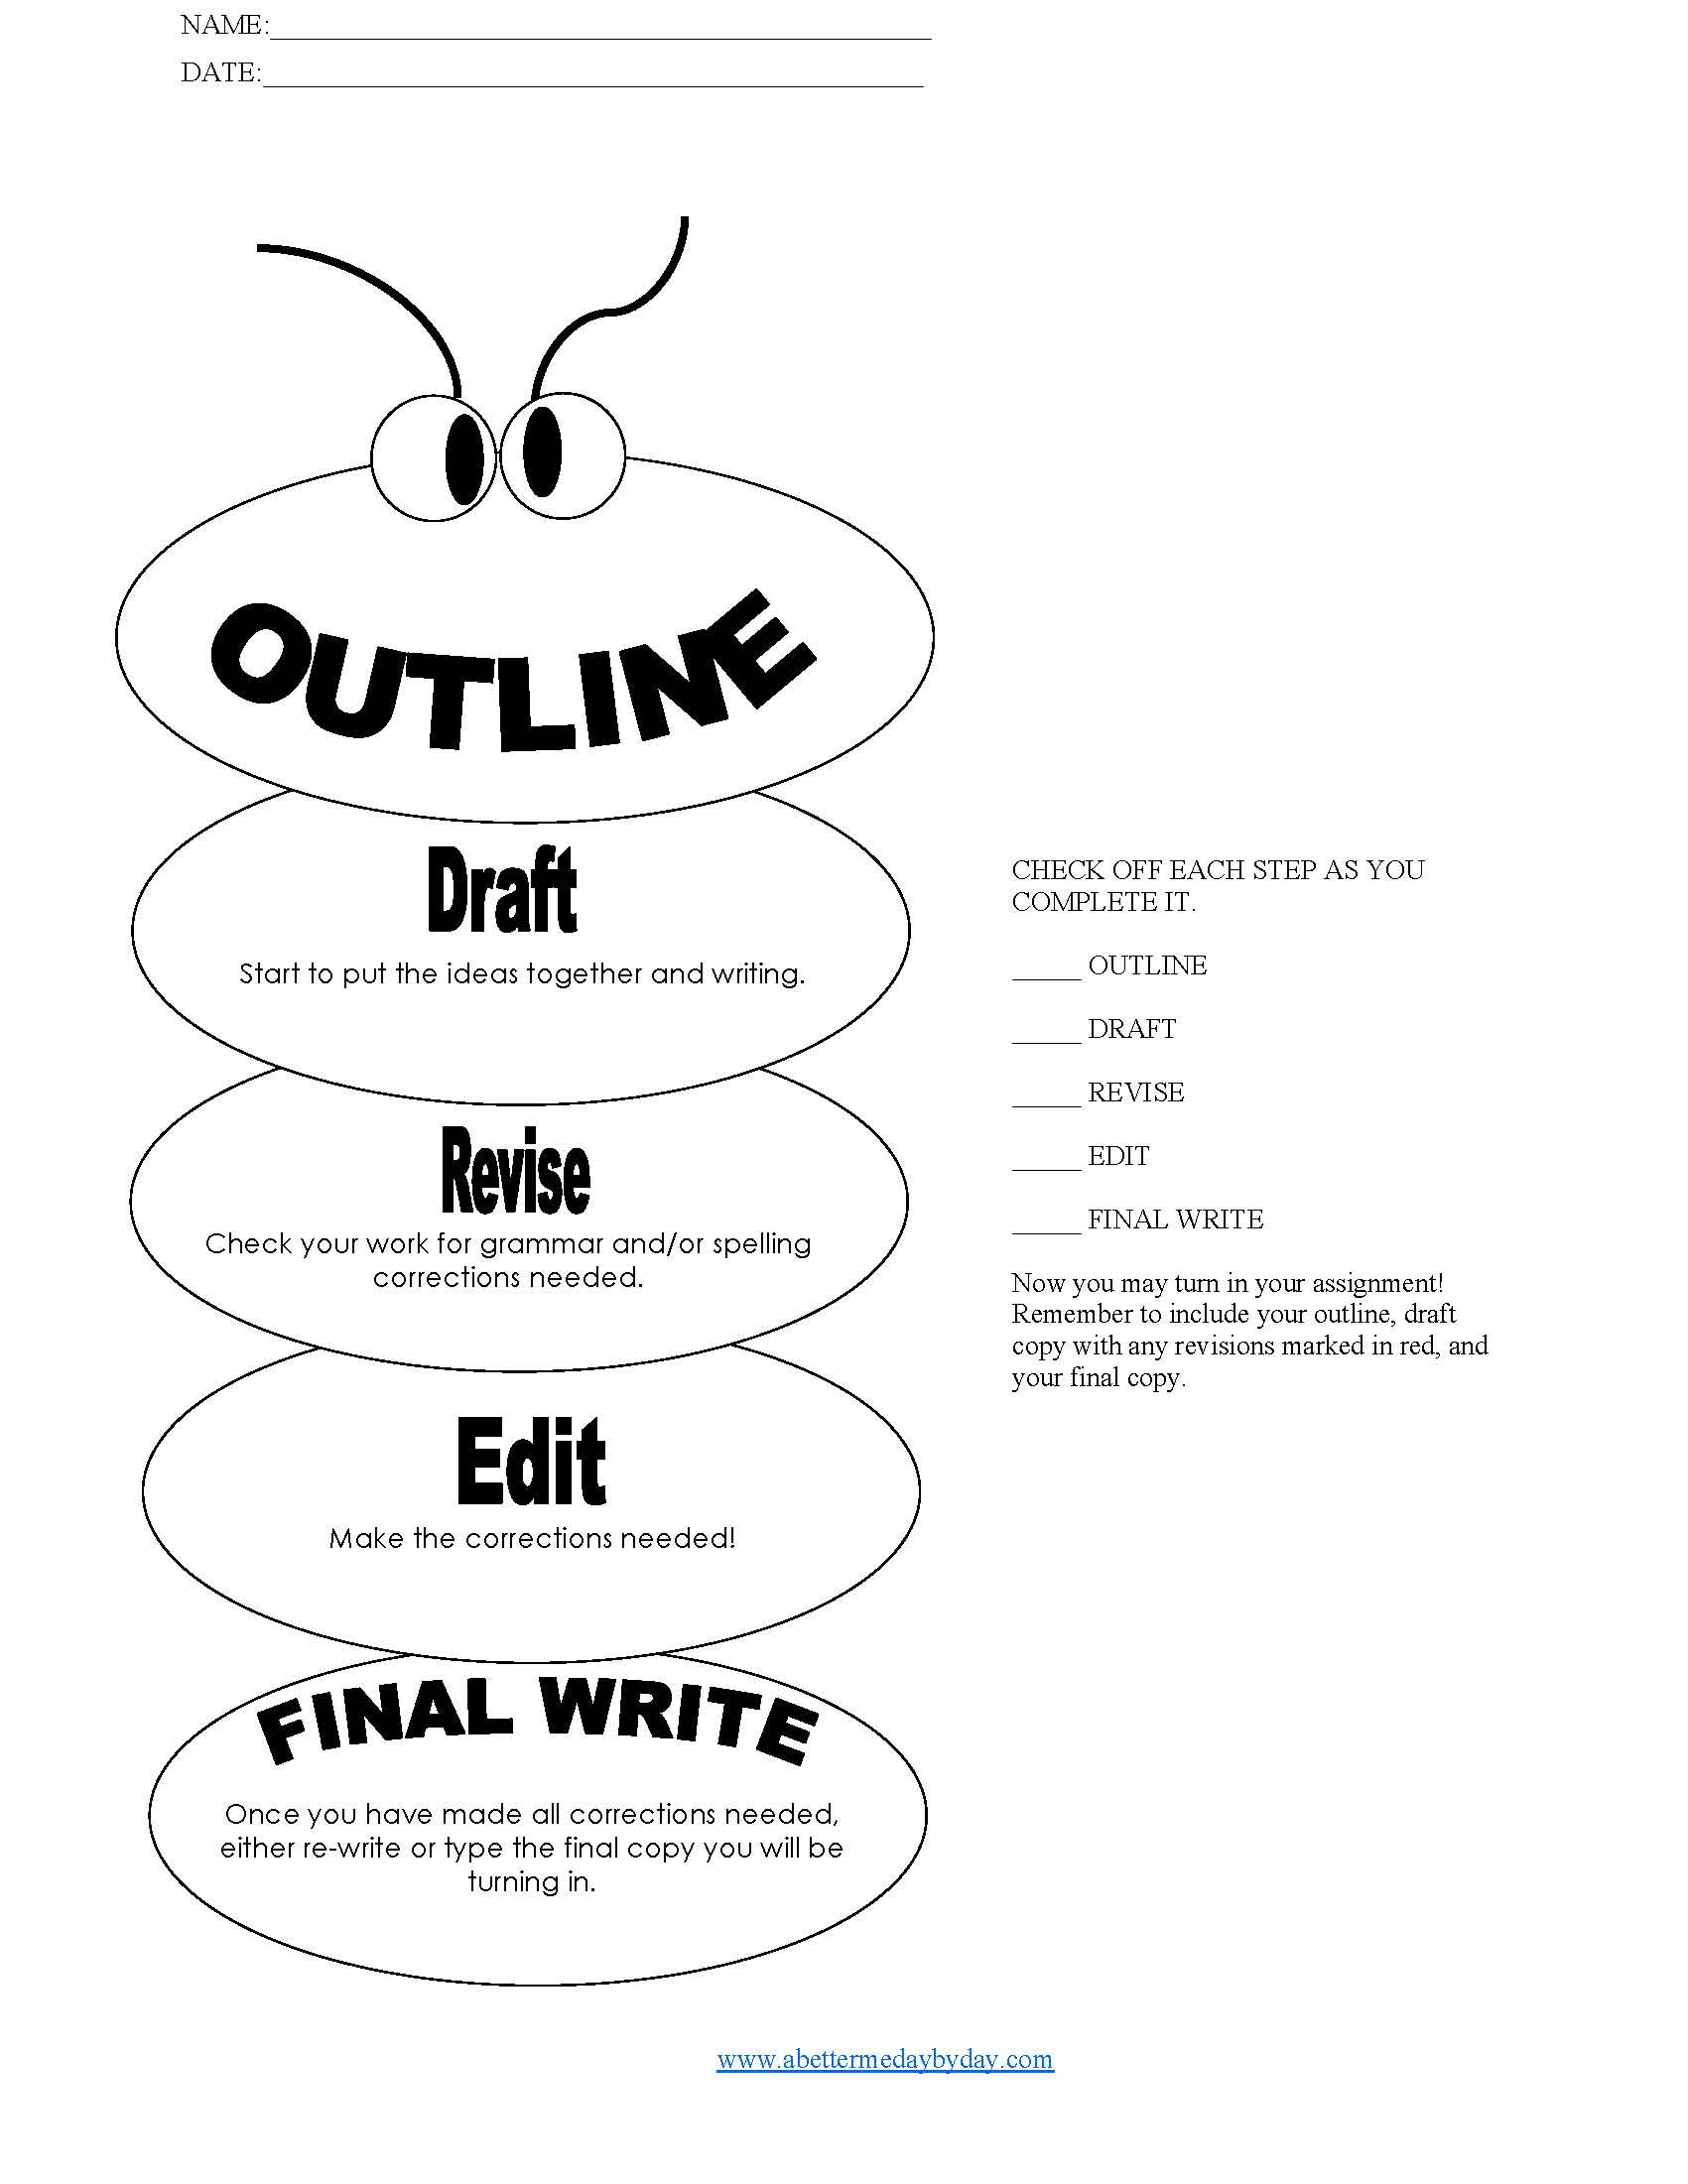 Outline for essay writing